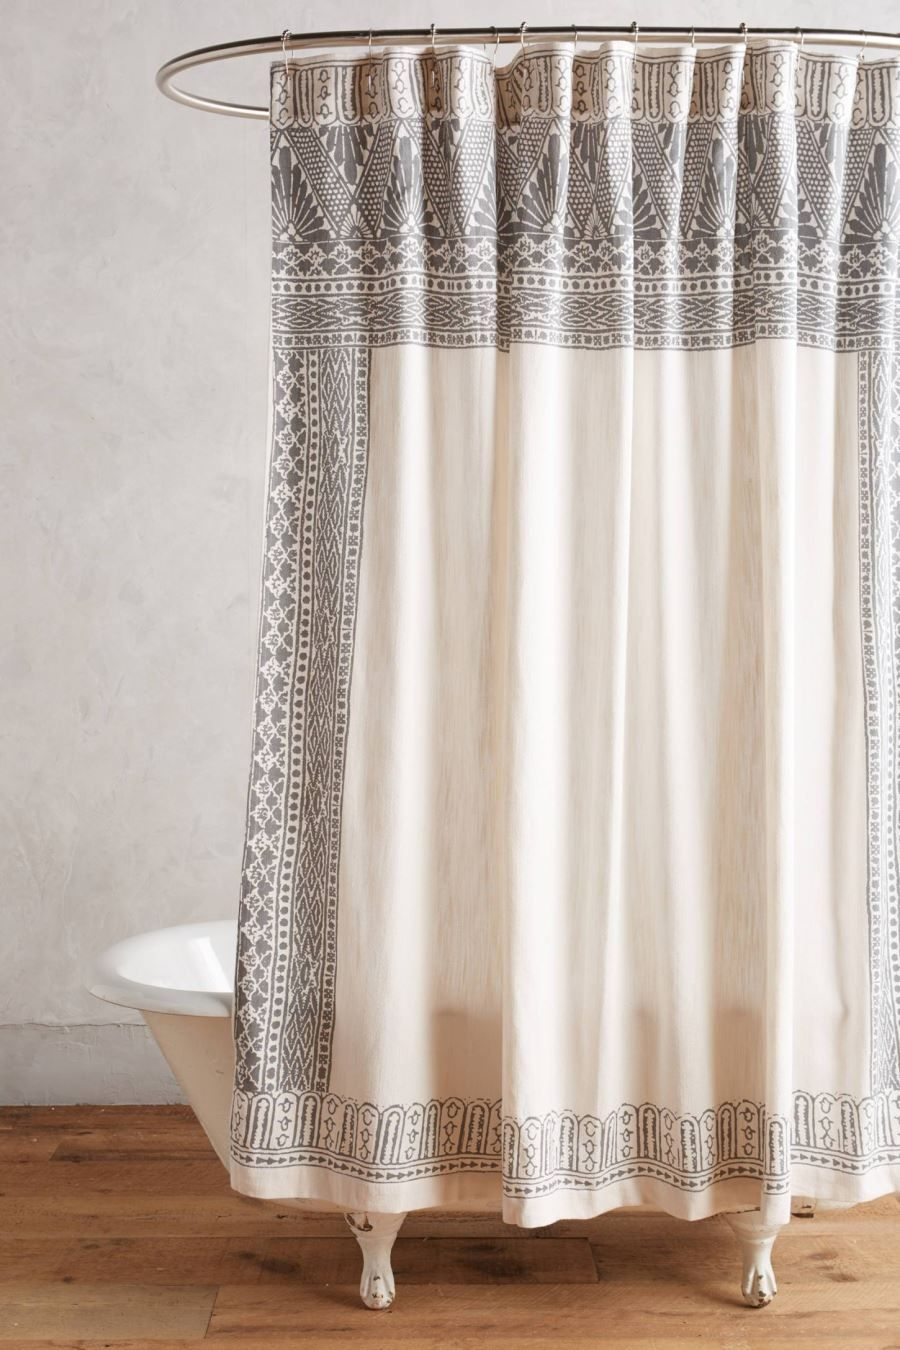 The Latest In Shower Curtain Trends Boho Shower Curtain Fancy